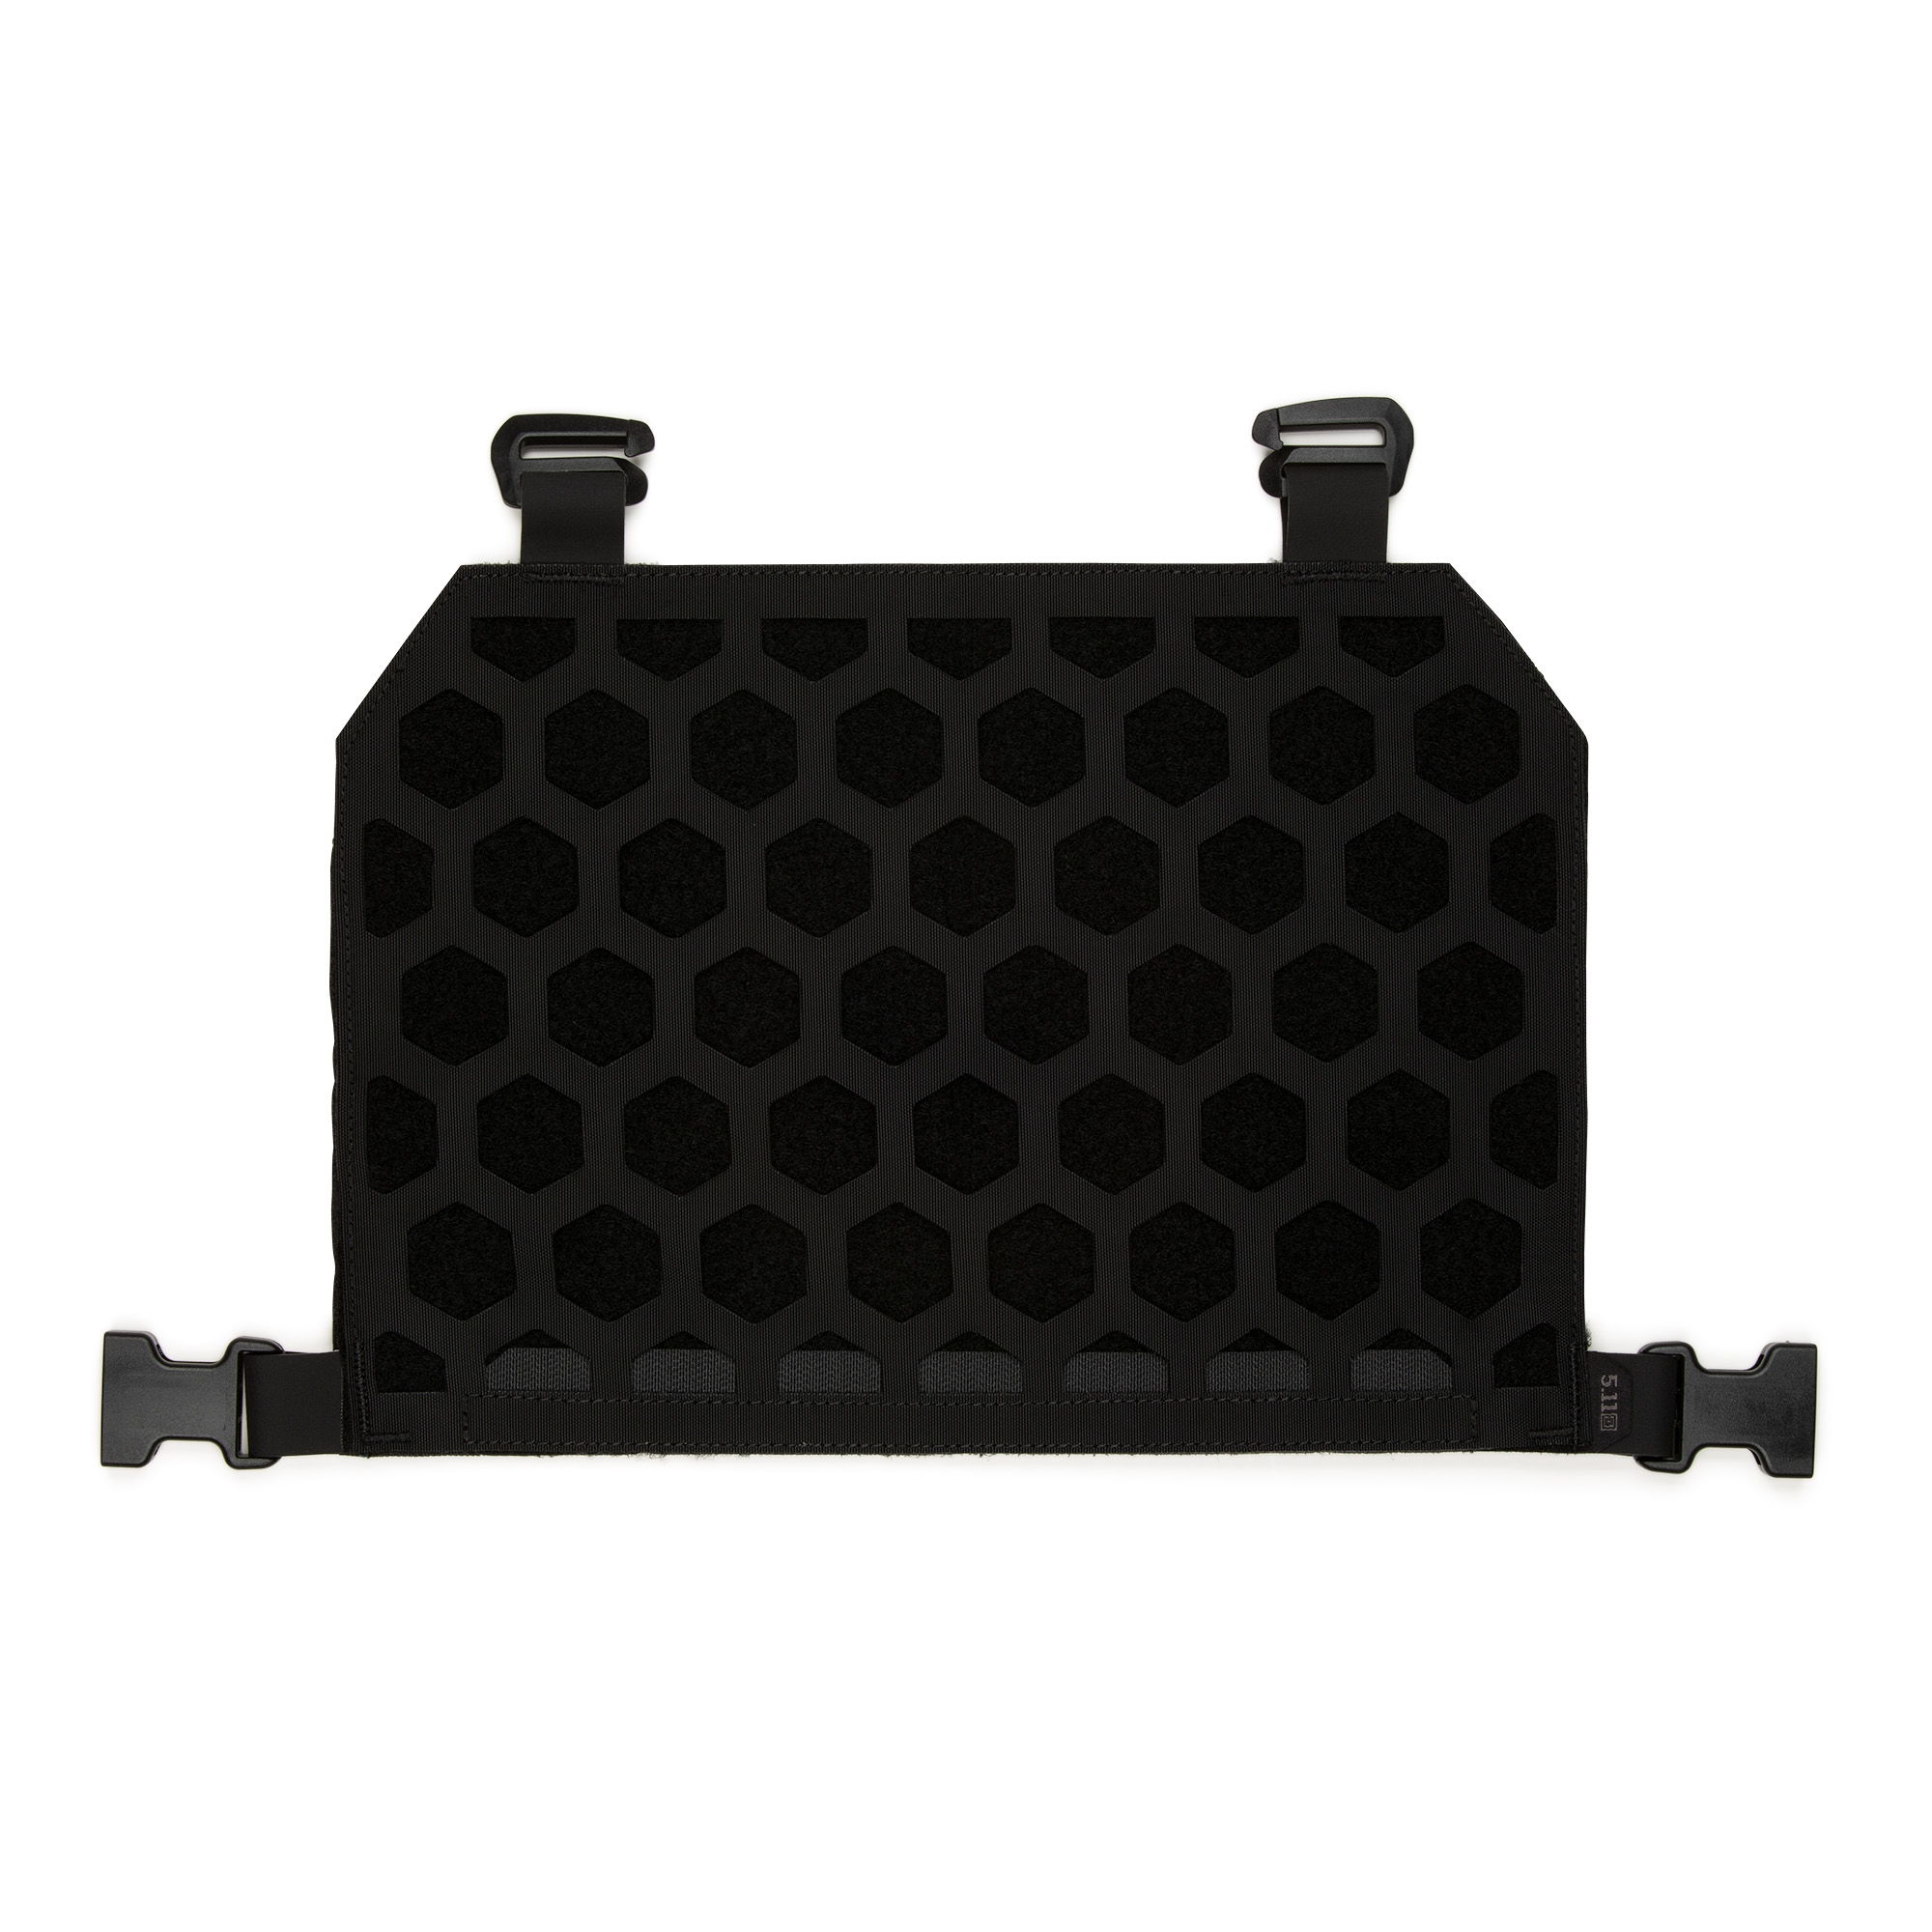 511 Tactical Double Ar Mag Pouch W Bungee Cover Sided Tool Holder Racks Tw 2f 29992999